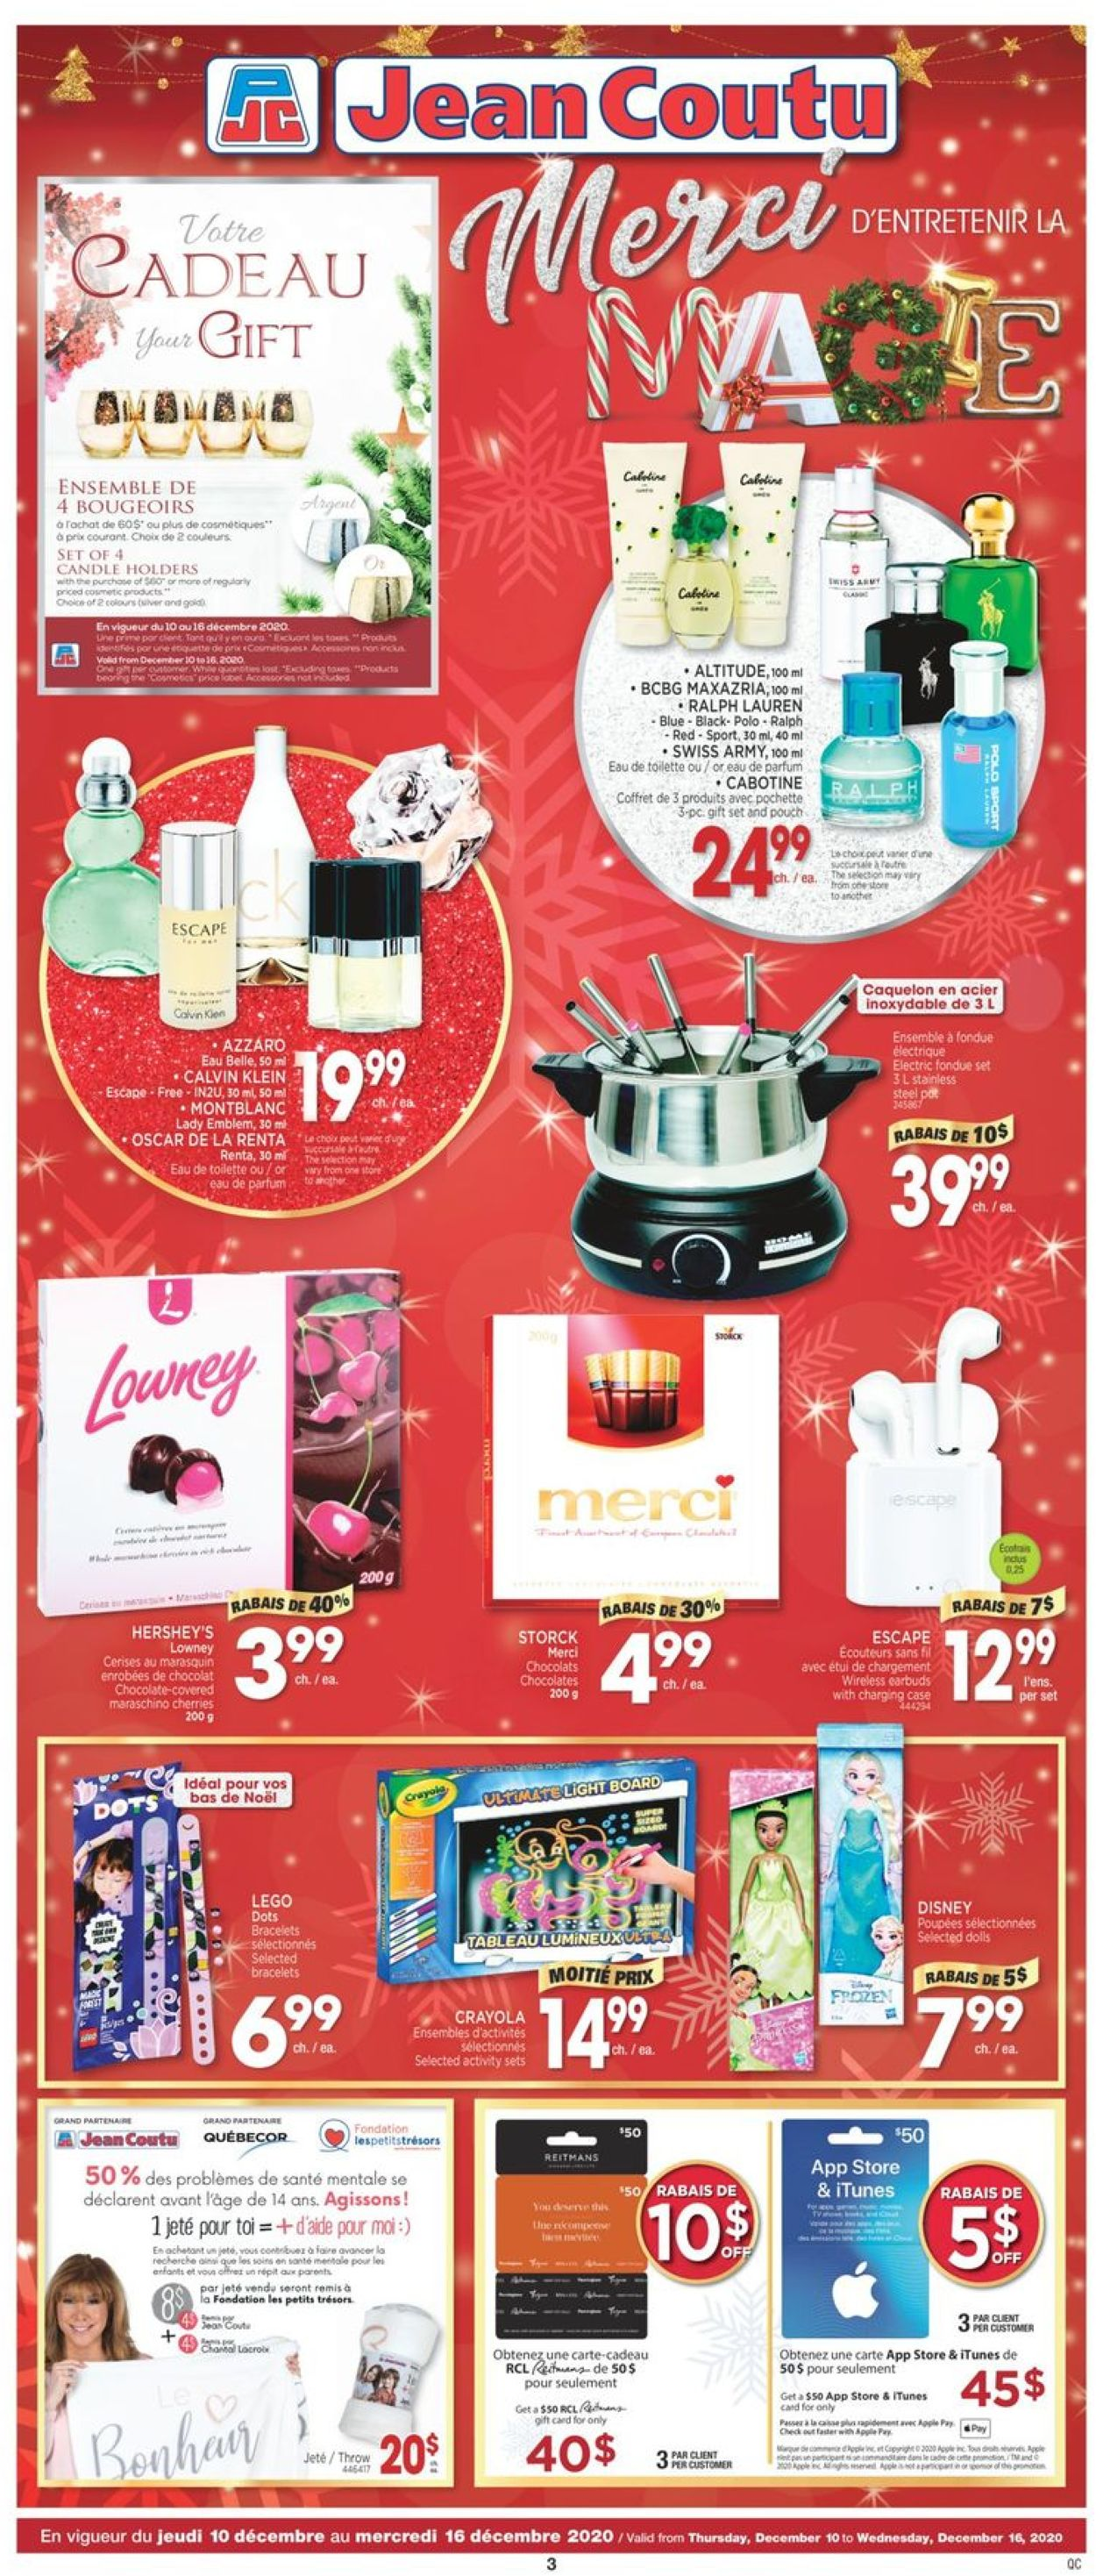 Jean Coutu - Holiday 2020 Flyer - 12/10-12/16/2020 (Page 2)